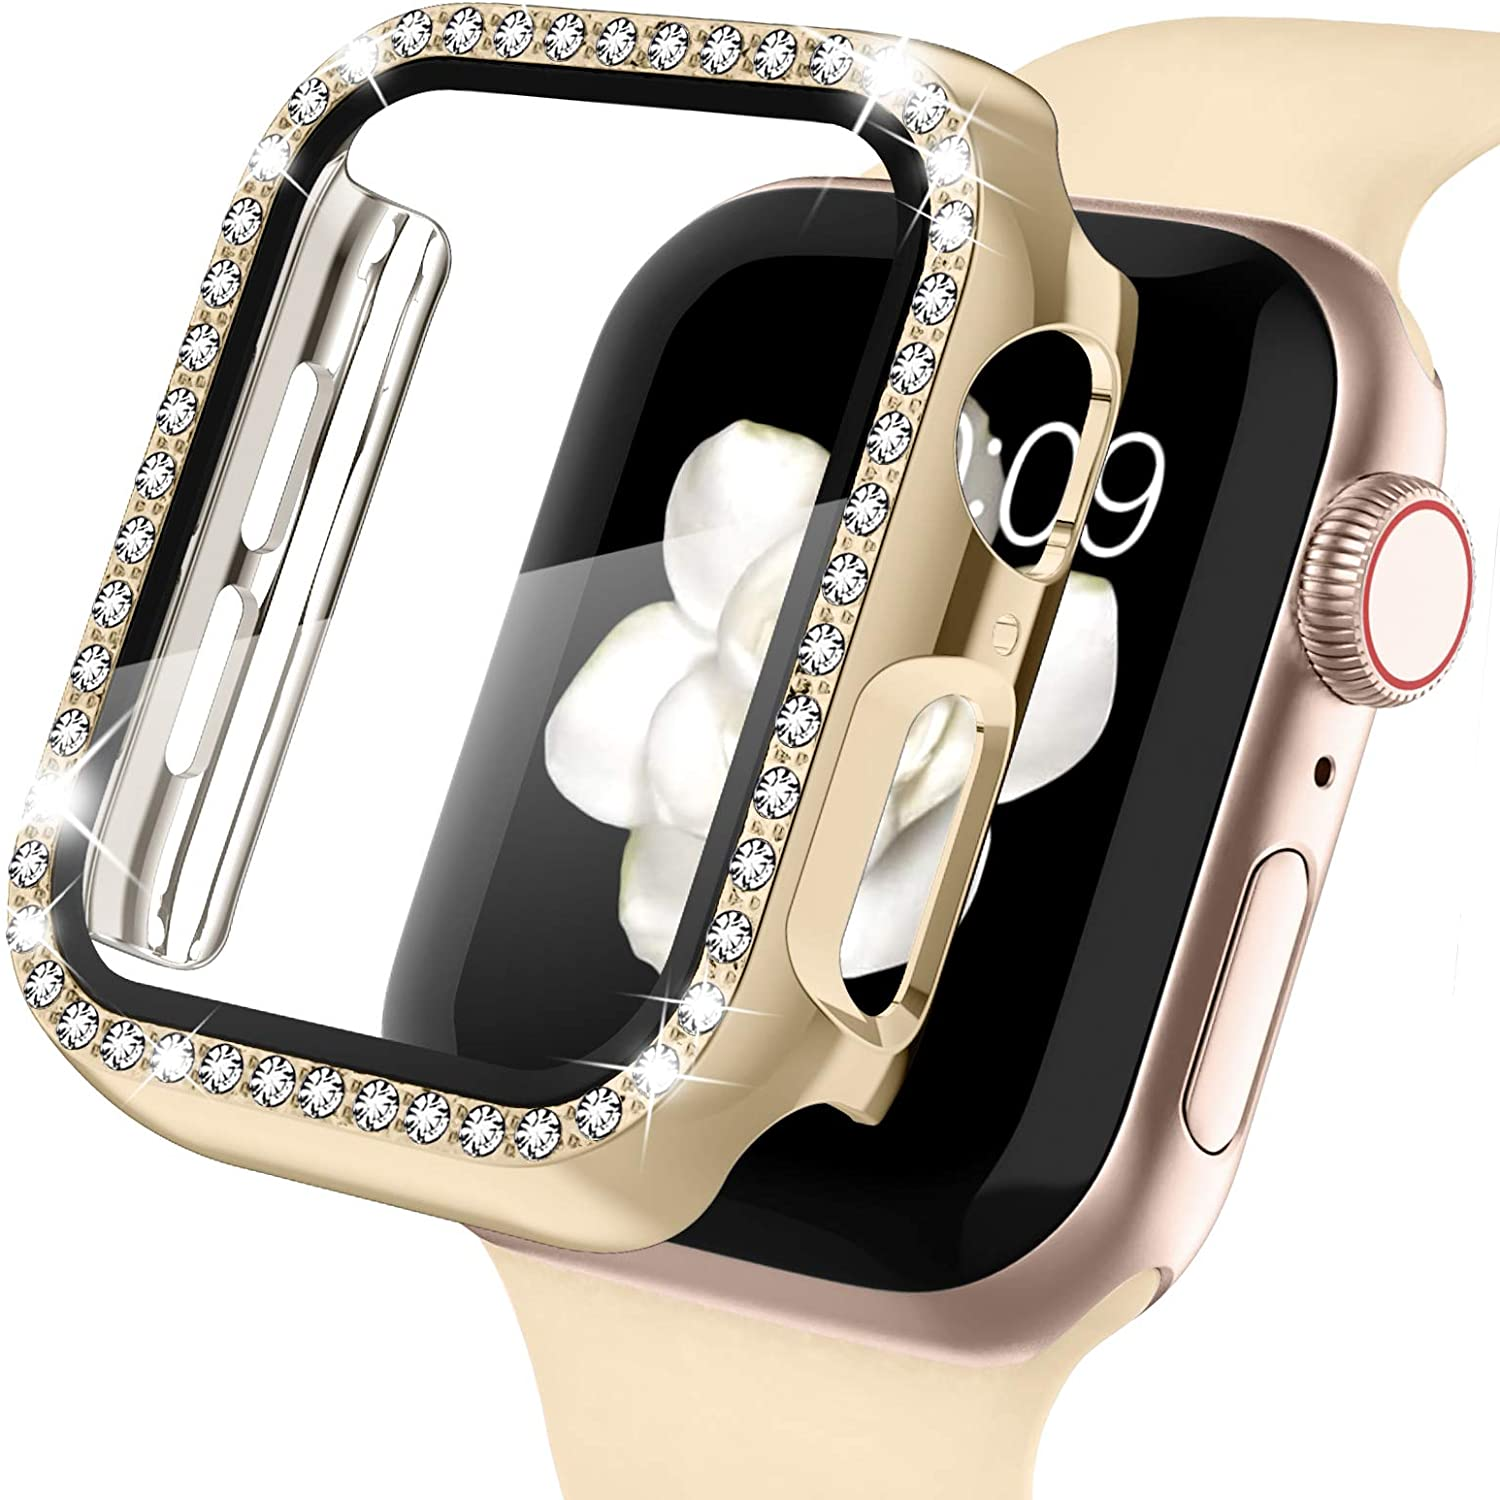 Recoppa Apple Watch Case with Screen Protector for Apple Watch 42mm Series 3/2/1, Bling Crystal Diamond Rhinestone Ultra-Thin Bumper Full Cover Protective Case for Women Girls iWatch Champagne Gold